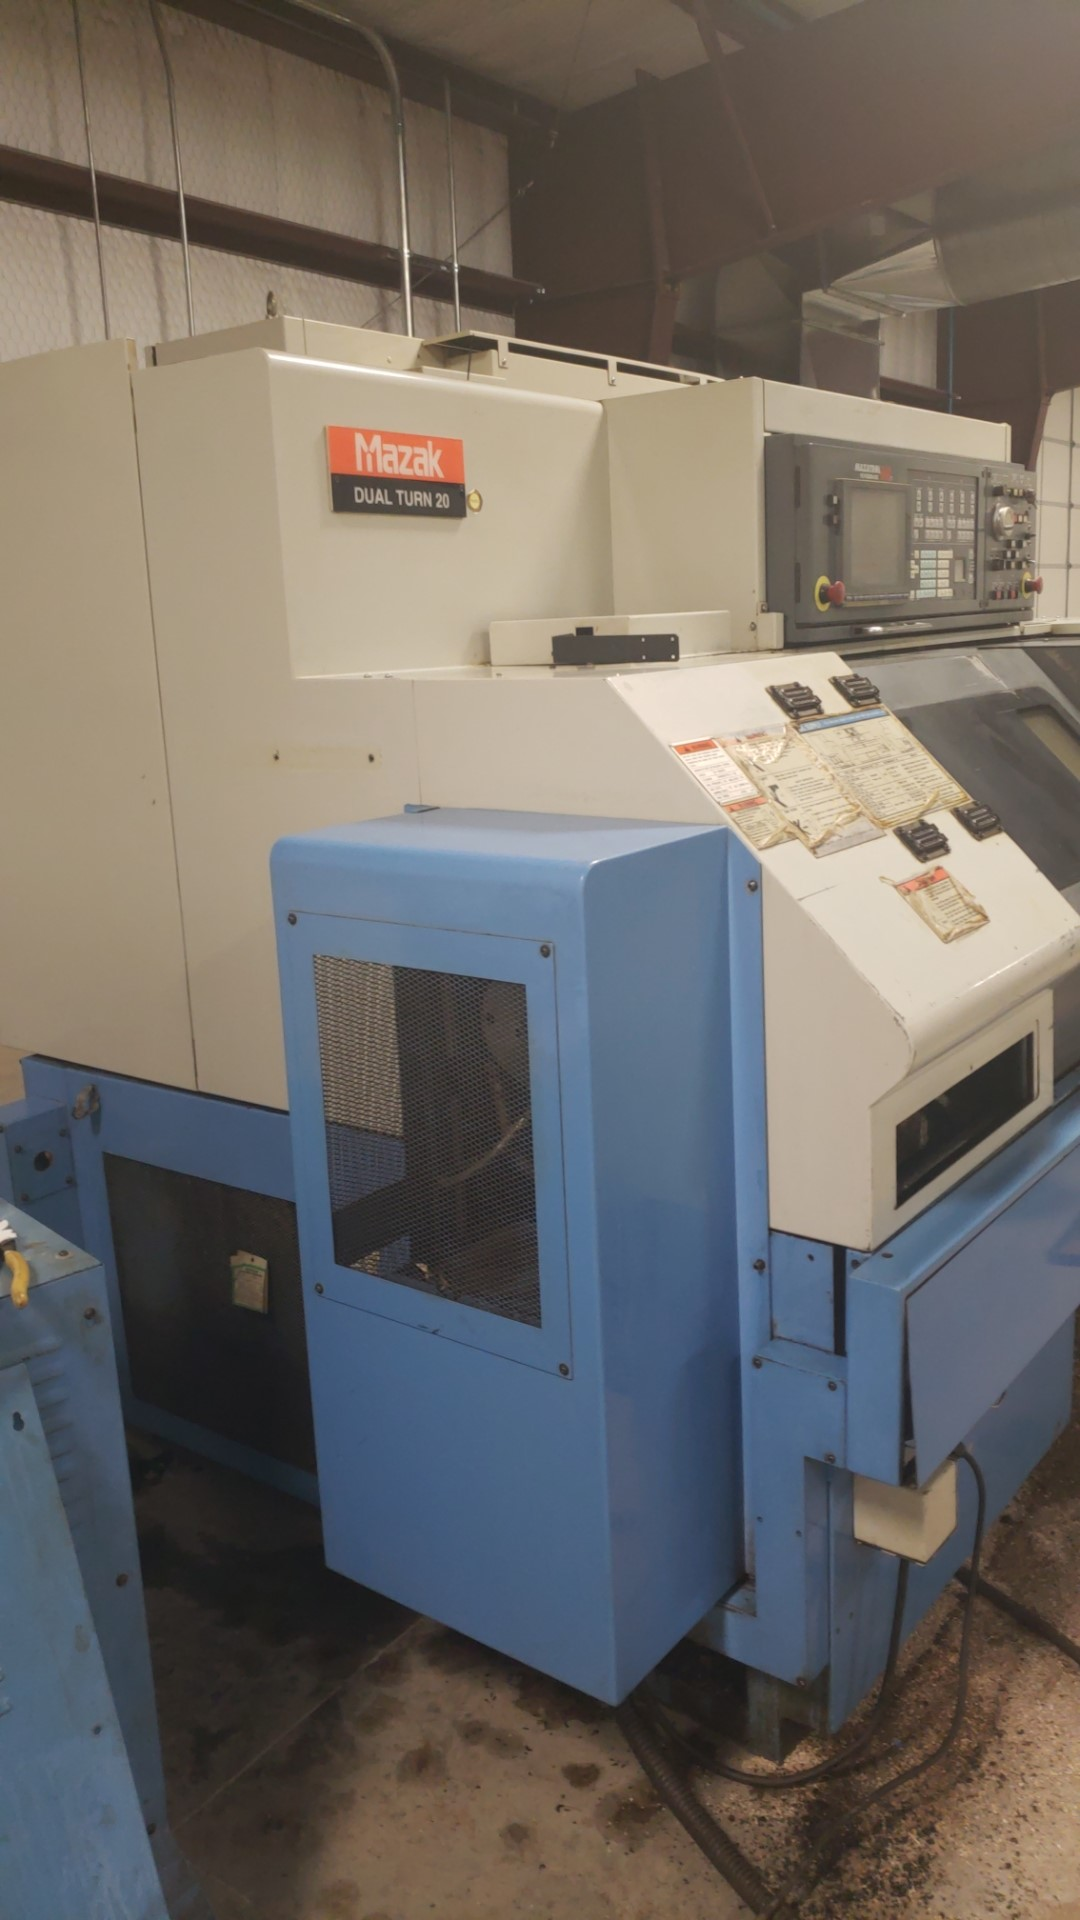 2004 Mazak Dual Turn 20 4 Axis Twin Spindle Twin Turret Opposed CNC Turning Center, rear discharge - Image 5 of 9